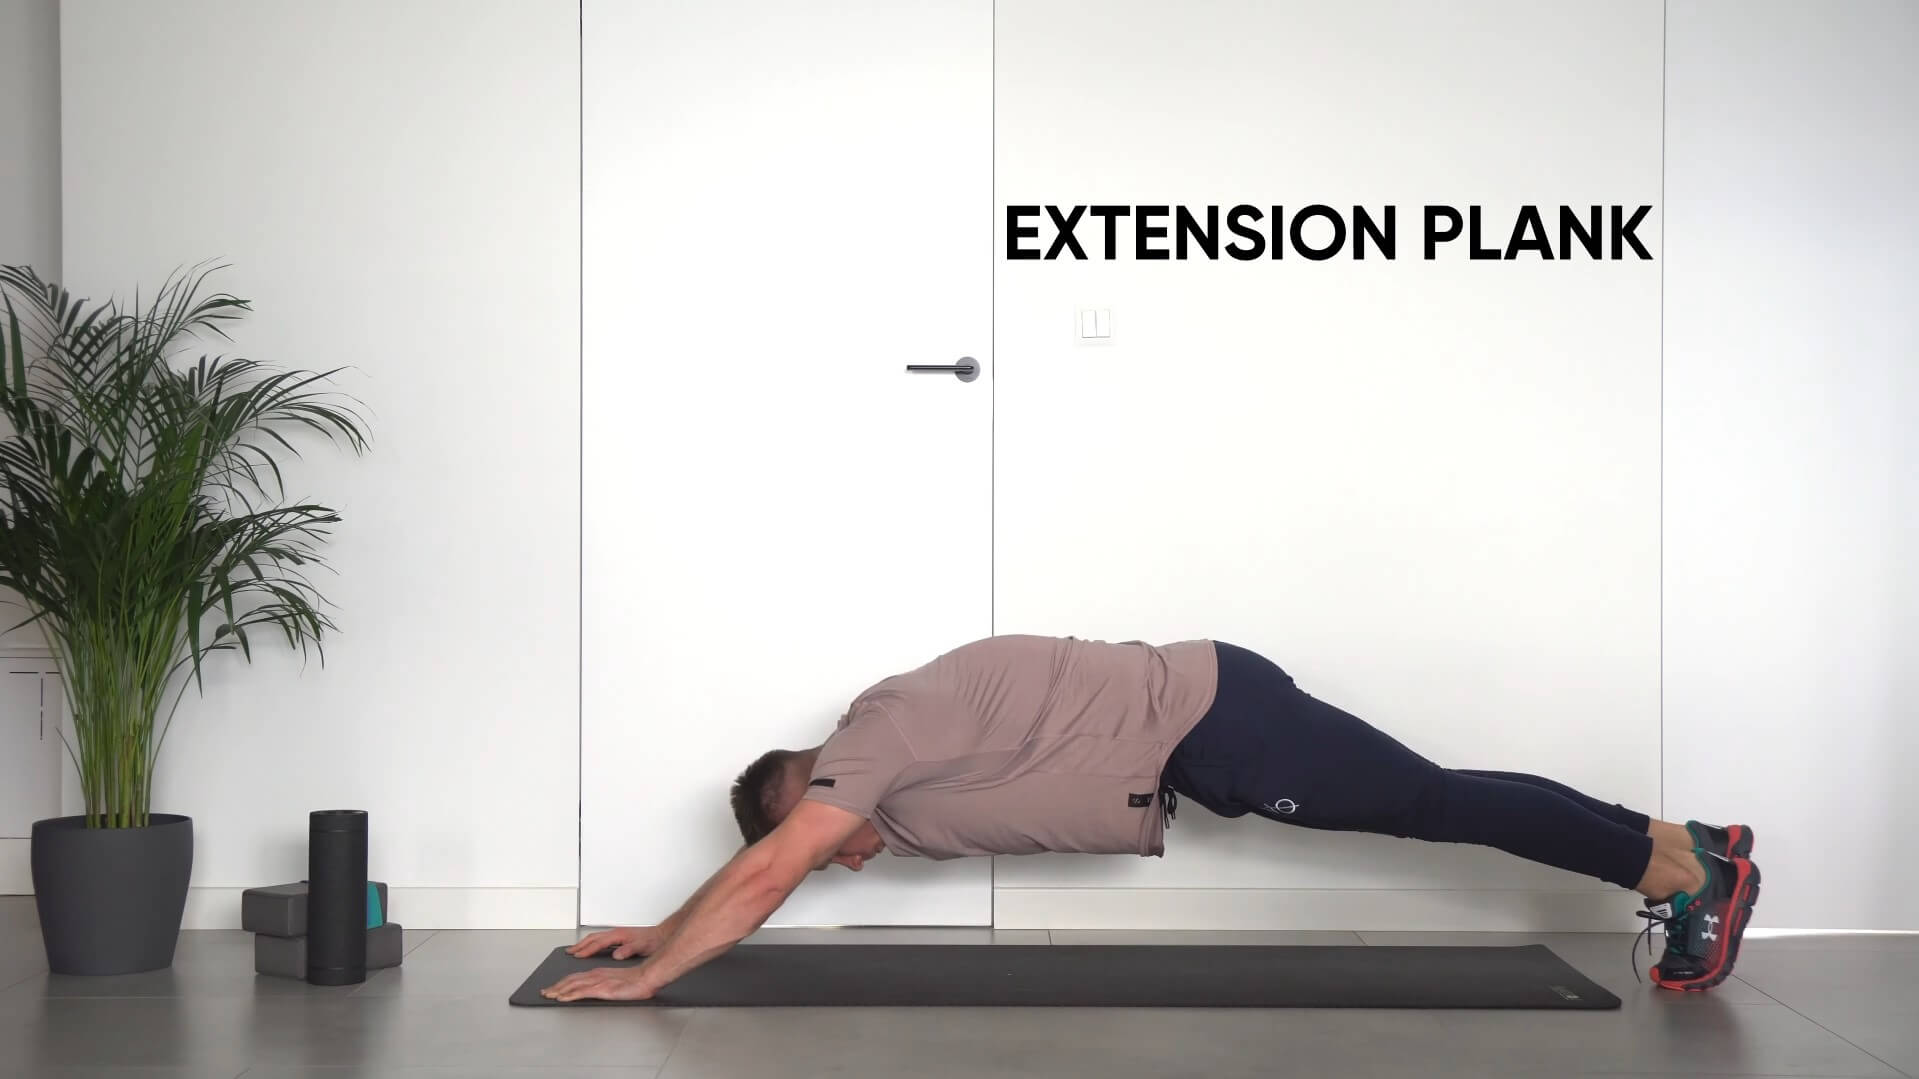 Extension plank